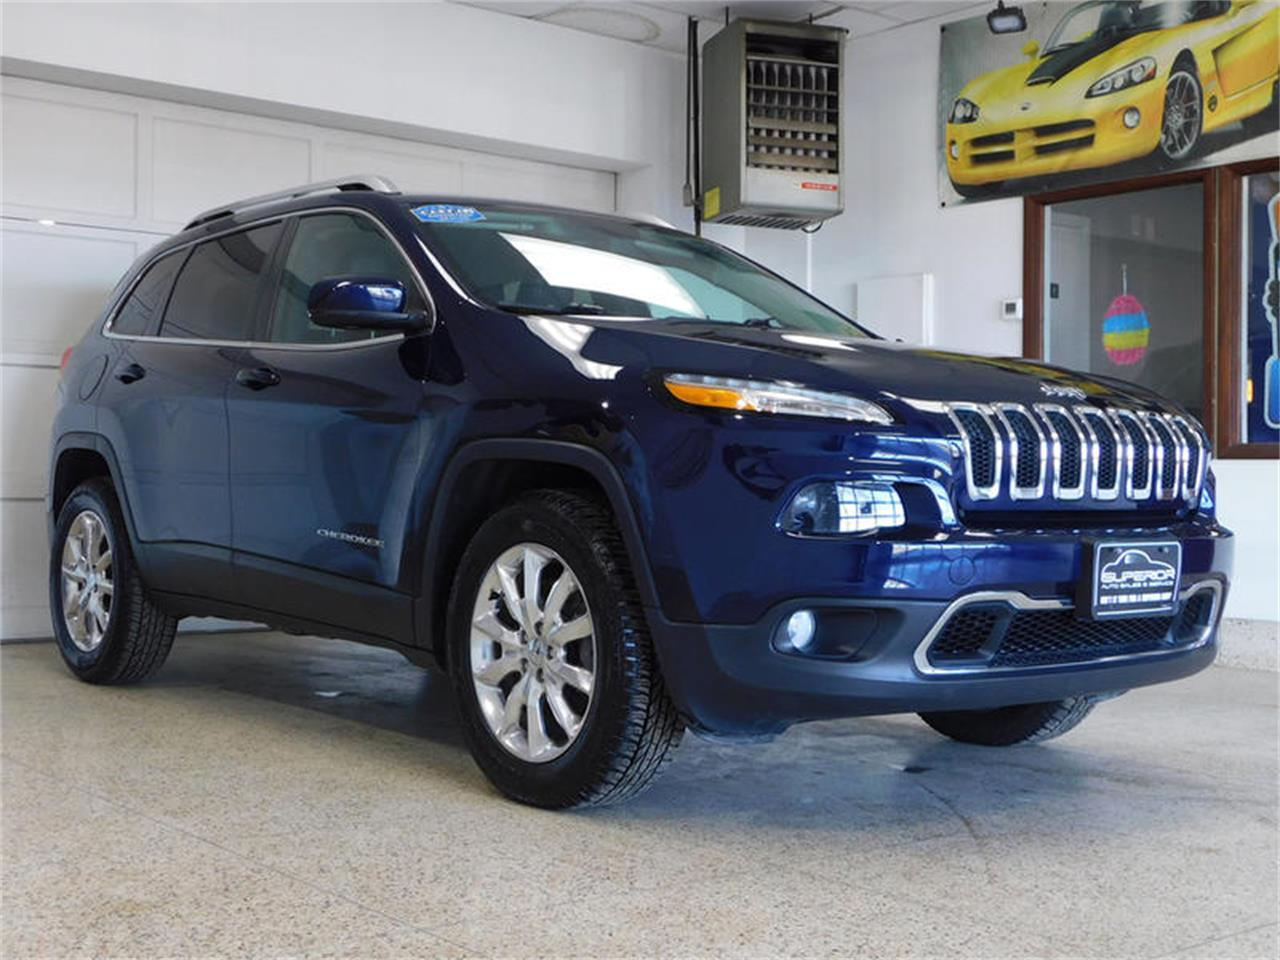 Large Picture of 2014 Cherokee located in New York Offered by Superior Auto Sales - PQXB